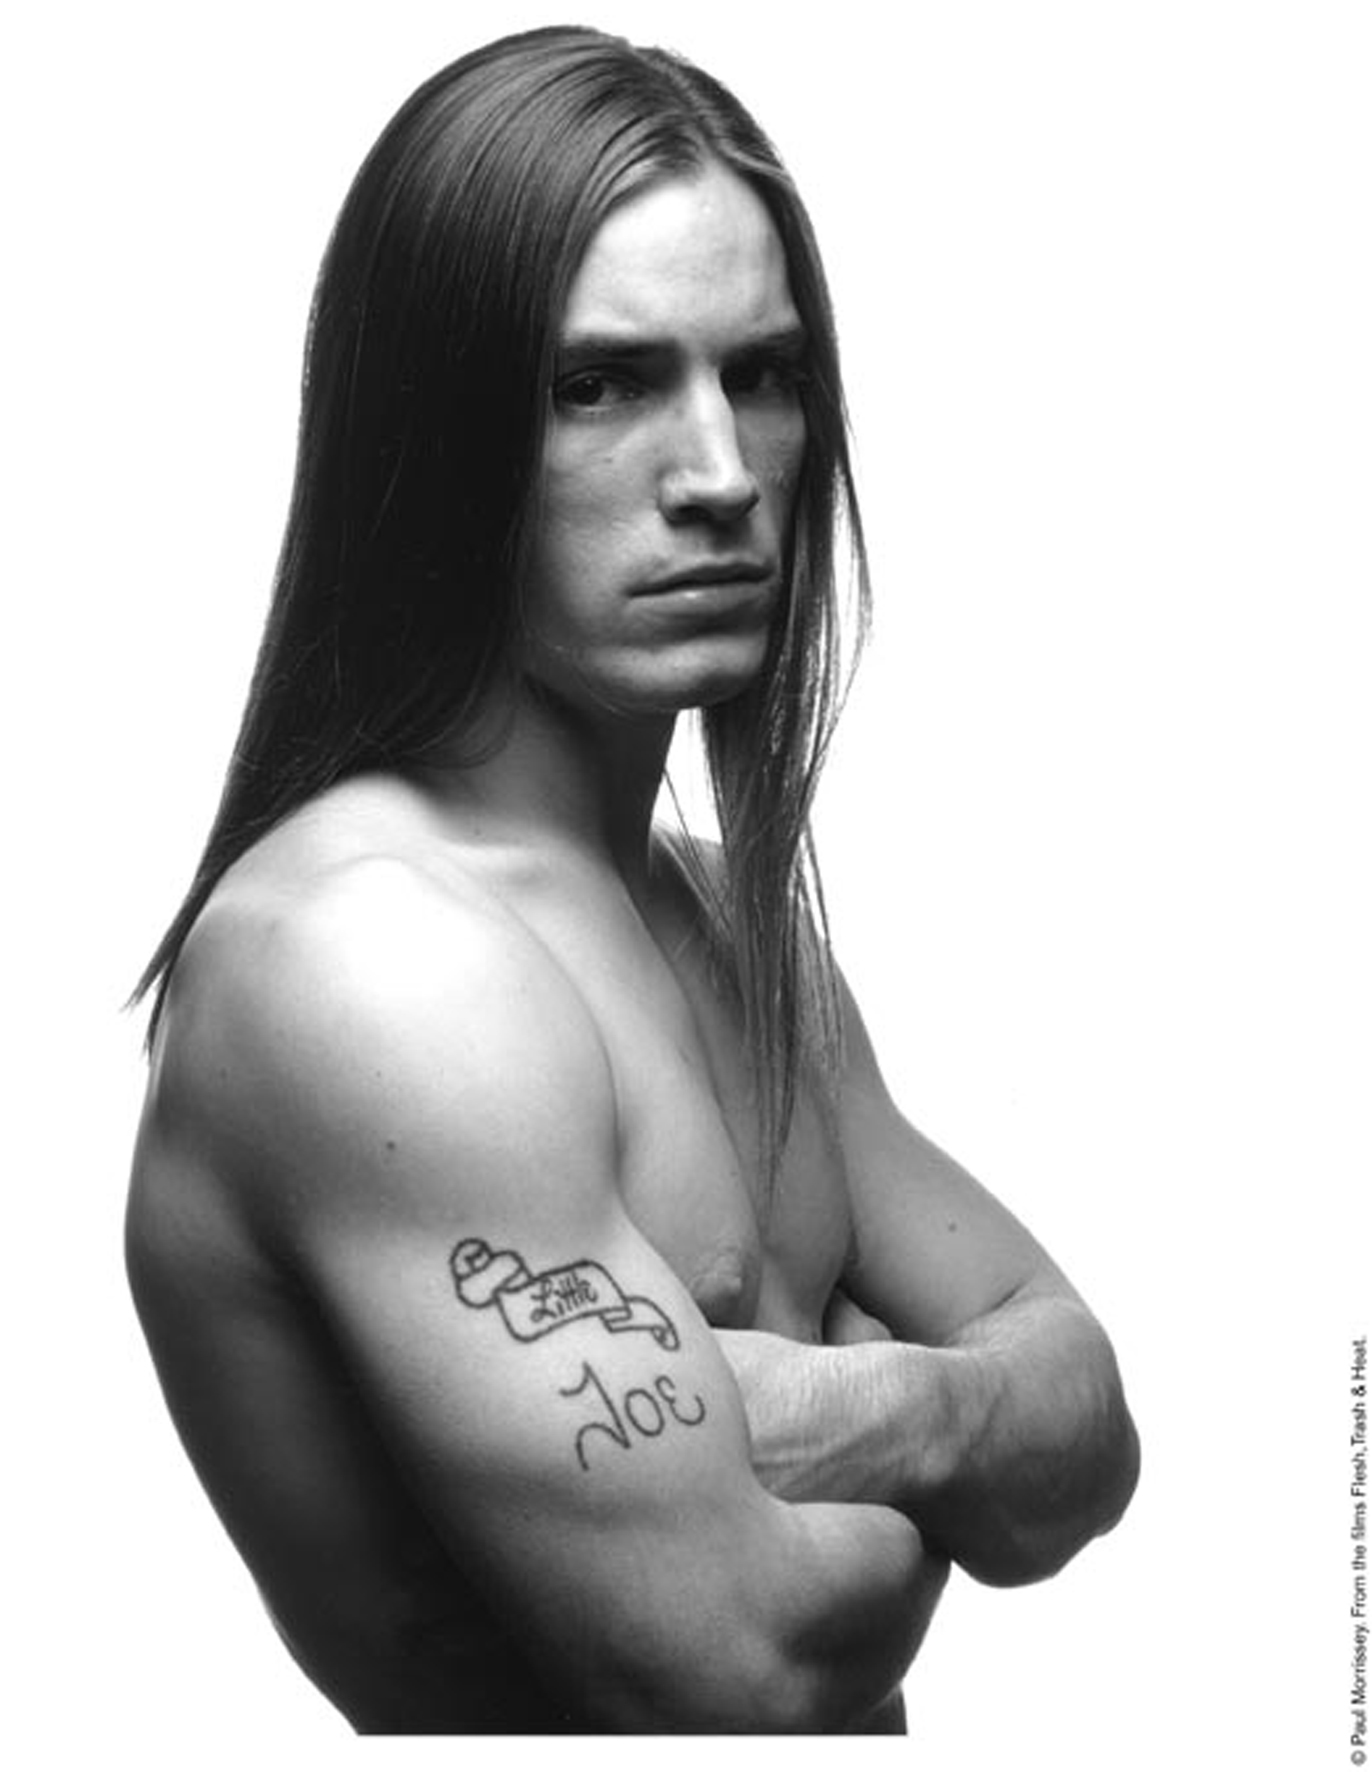 Pensacola, Florida, USA, 1948-12-31, Joe Dallesandro